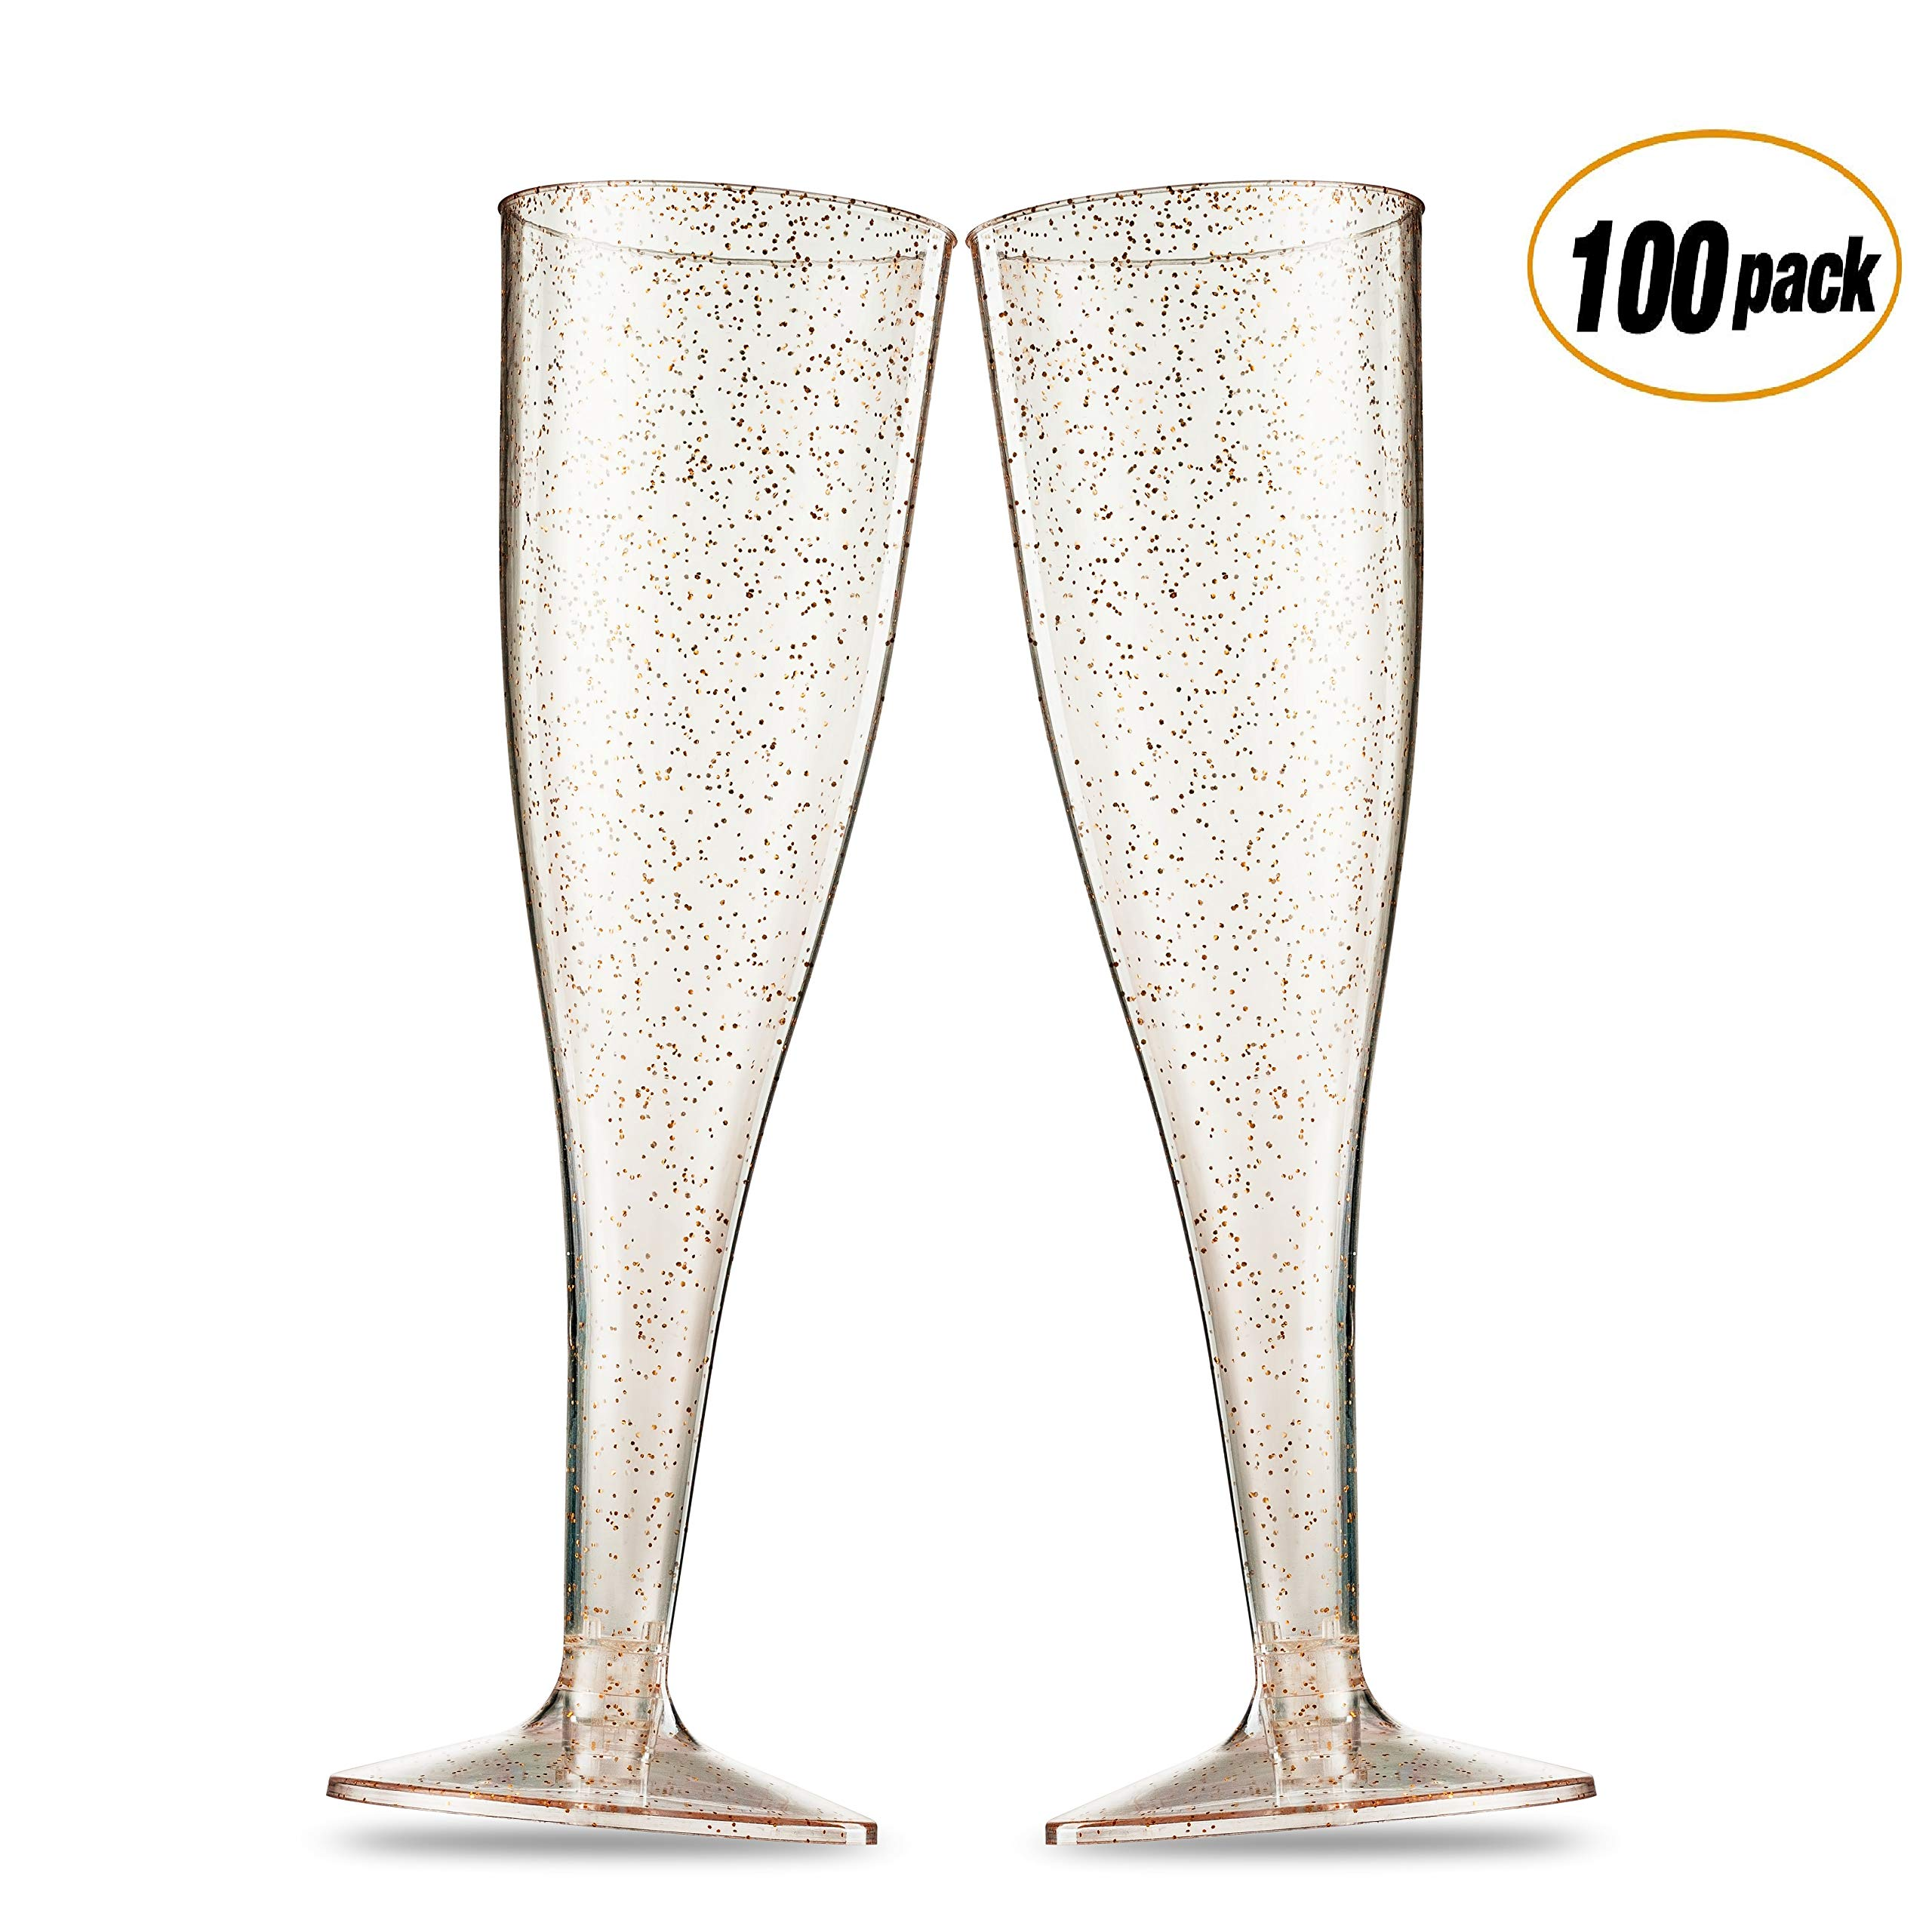 100 Pack Gold Glitter Plastic Champagne Flutes 5 Oz Clear Plastic Toasting Glasses Disposable Wedding Party Cocktail Cups by Munfix (Image #1)